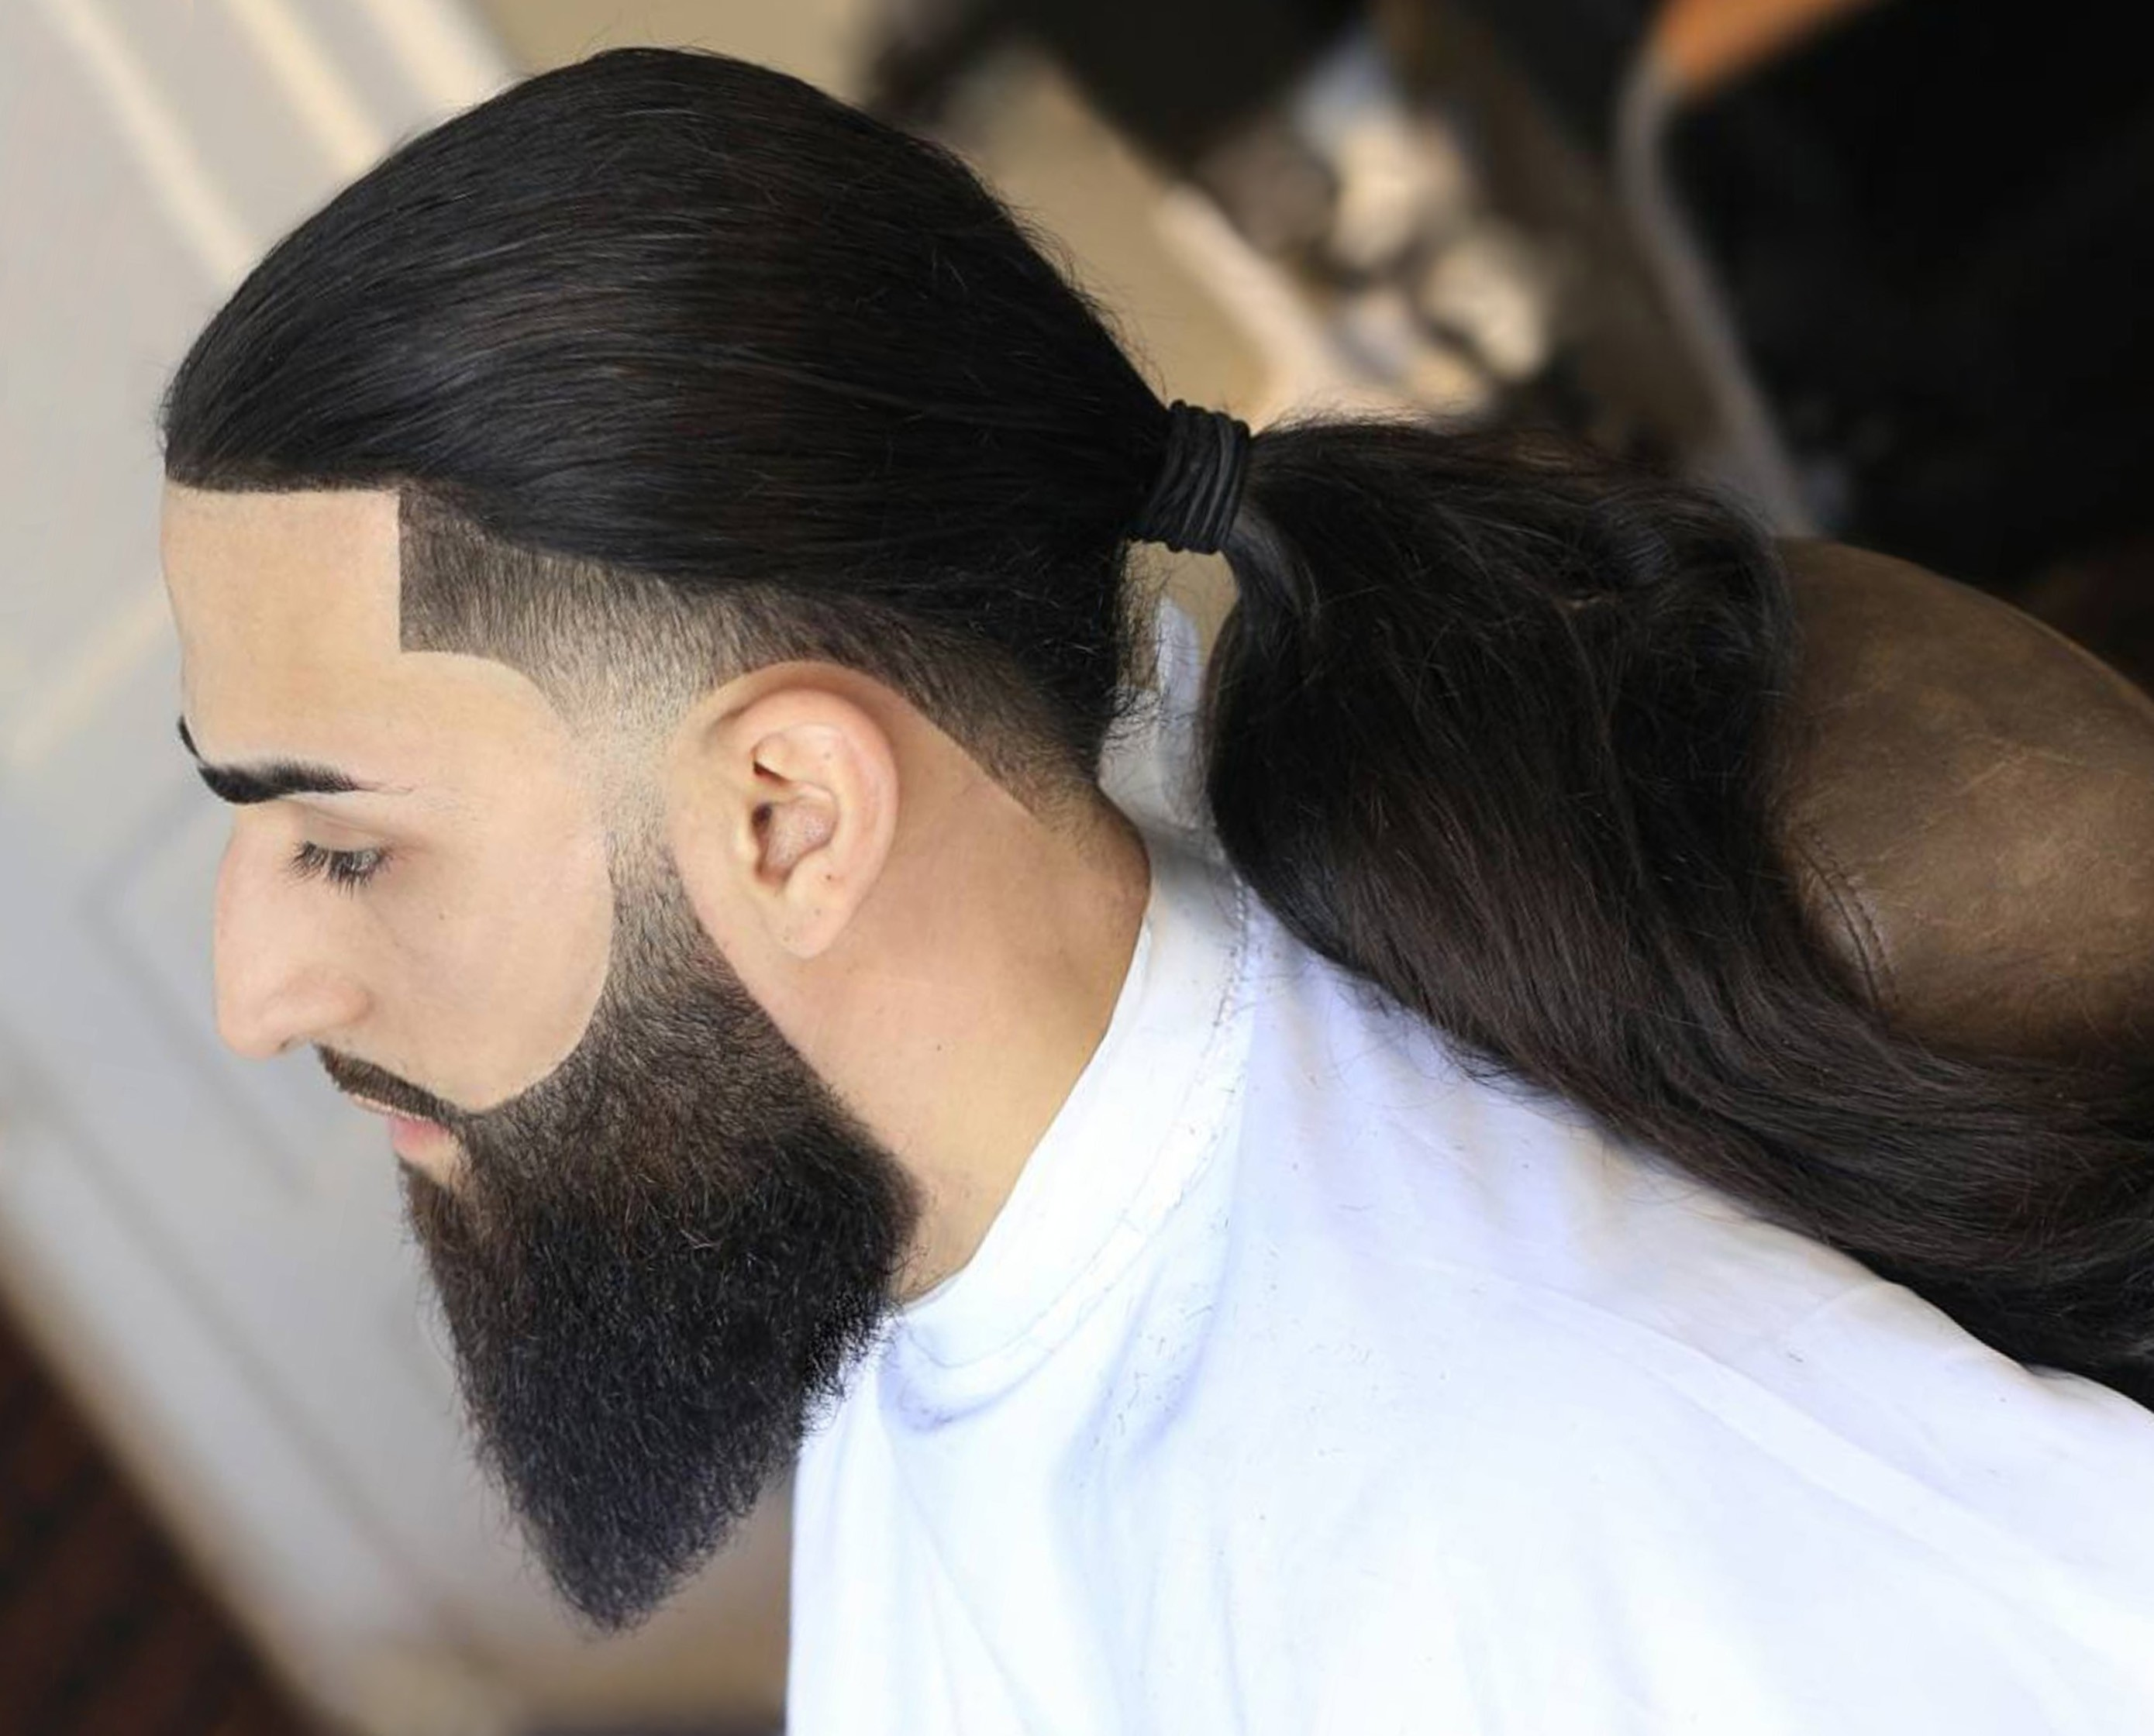 A full beard combined with a tapered fade cut.